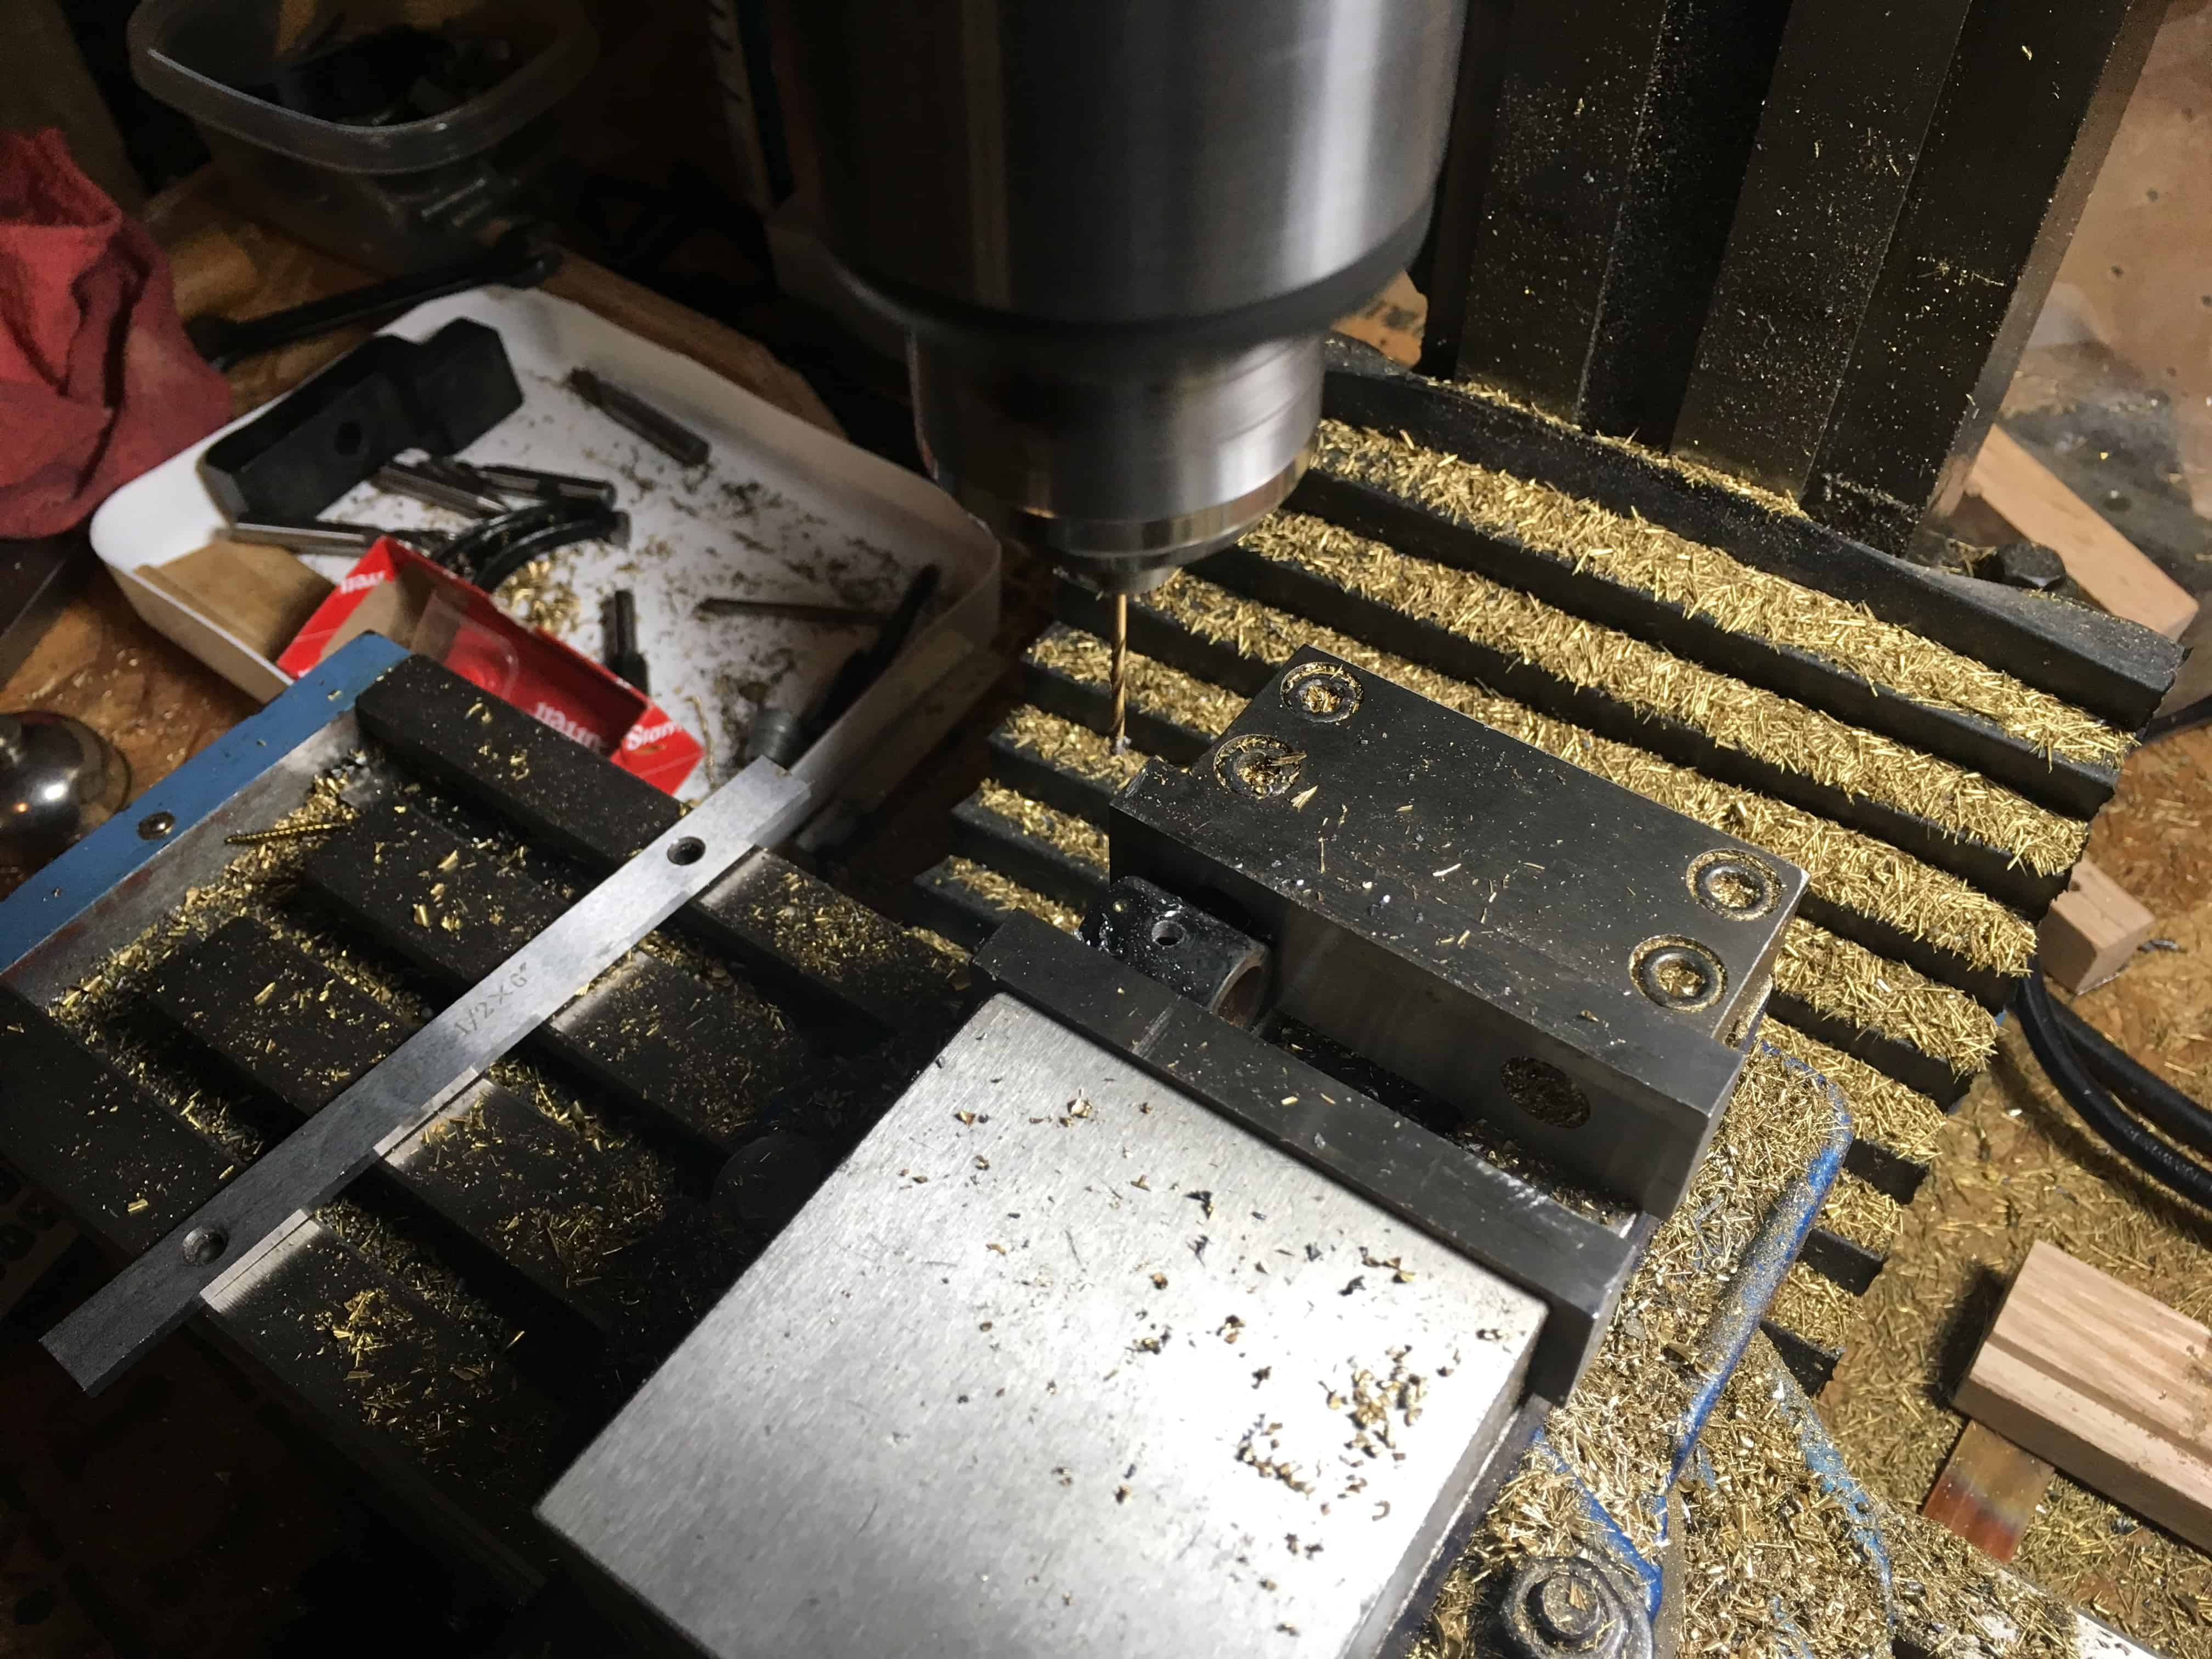 11 drilling and tapping